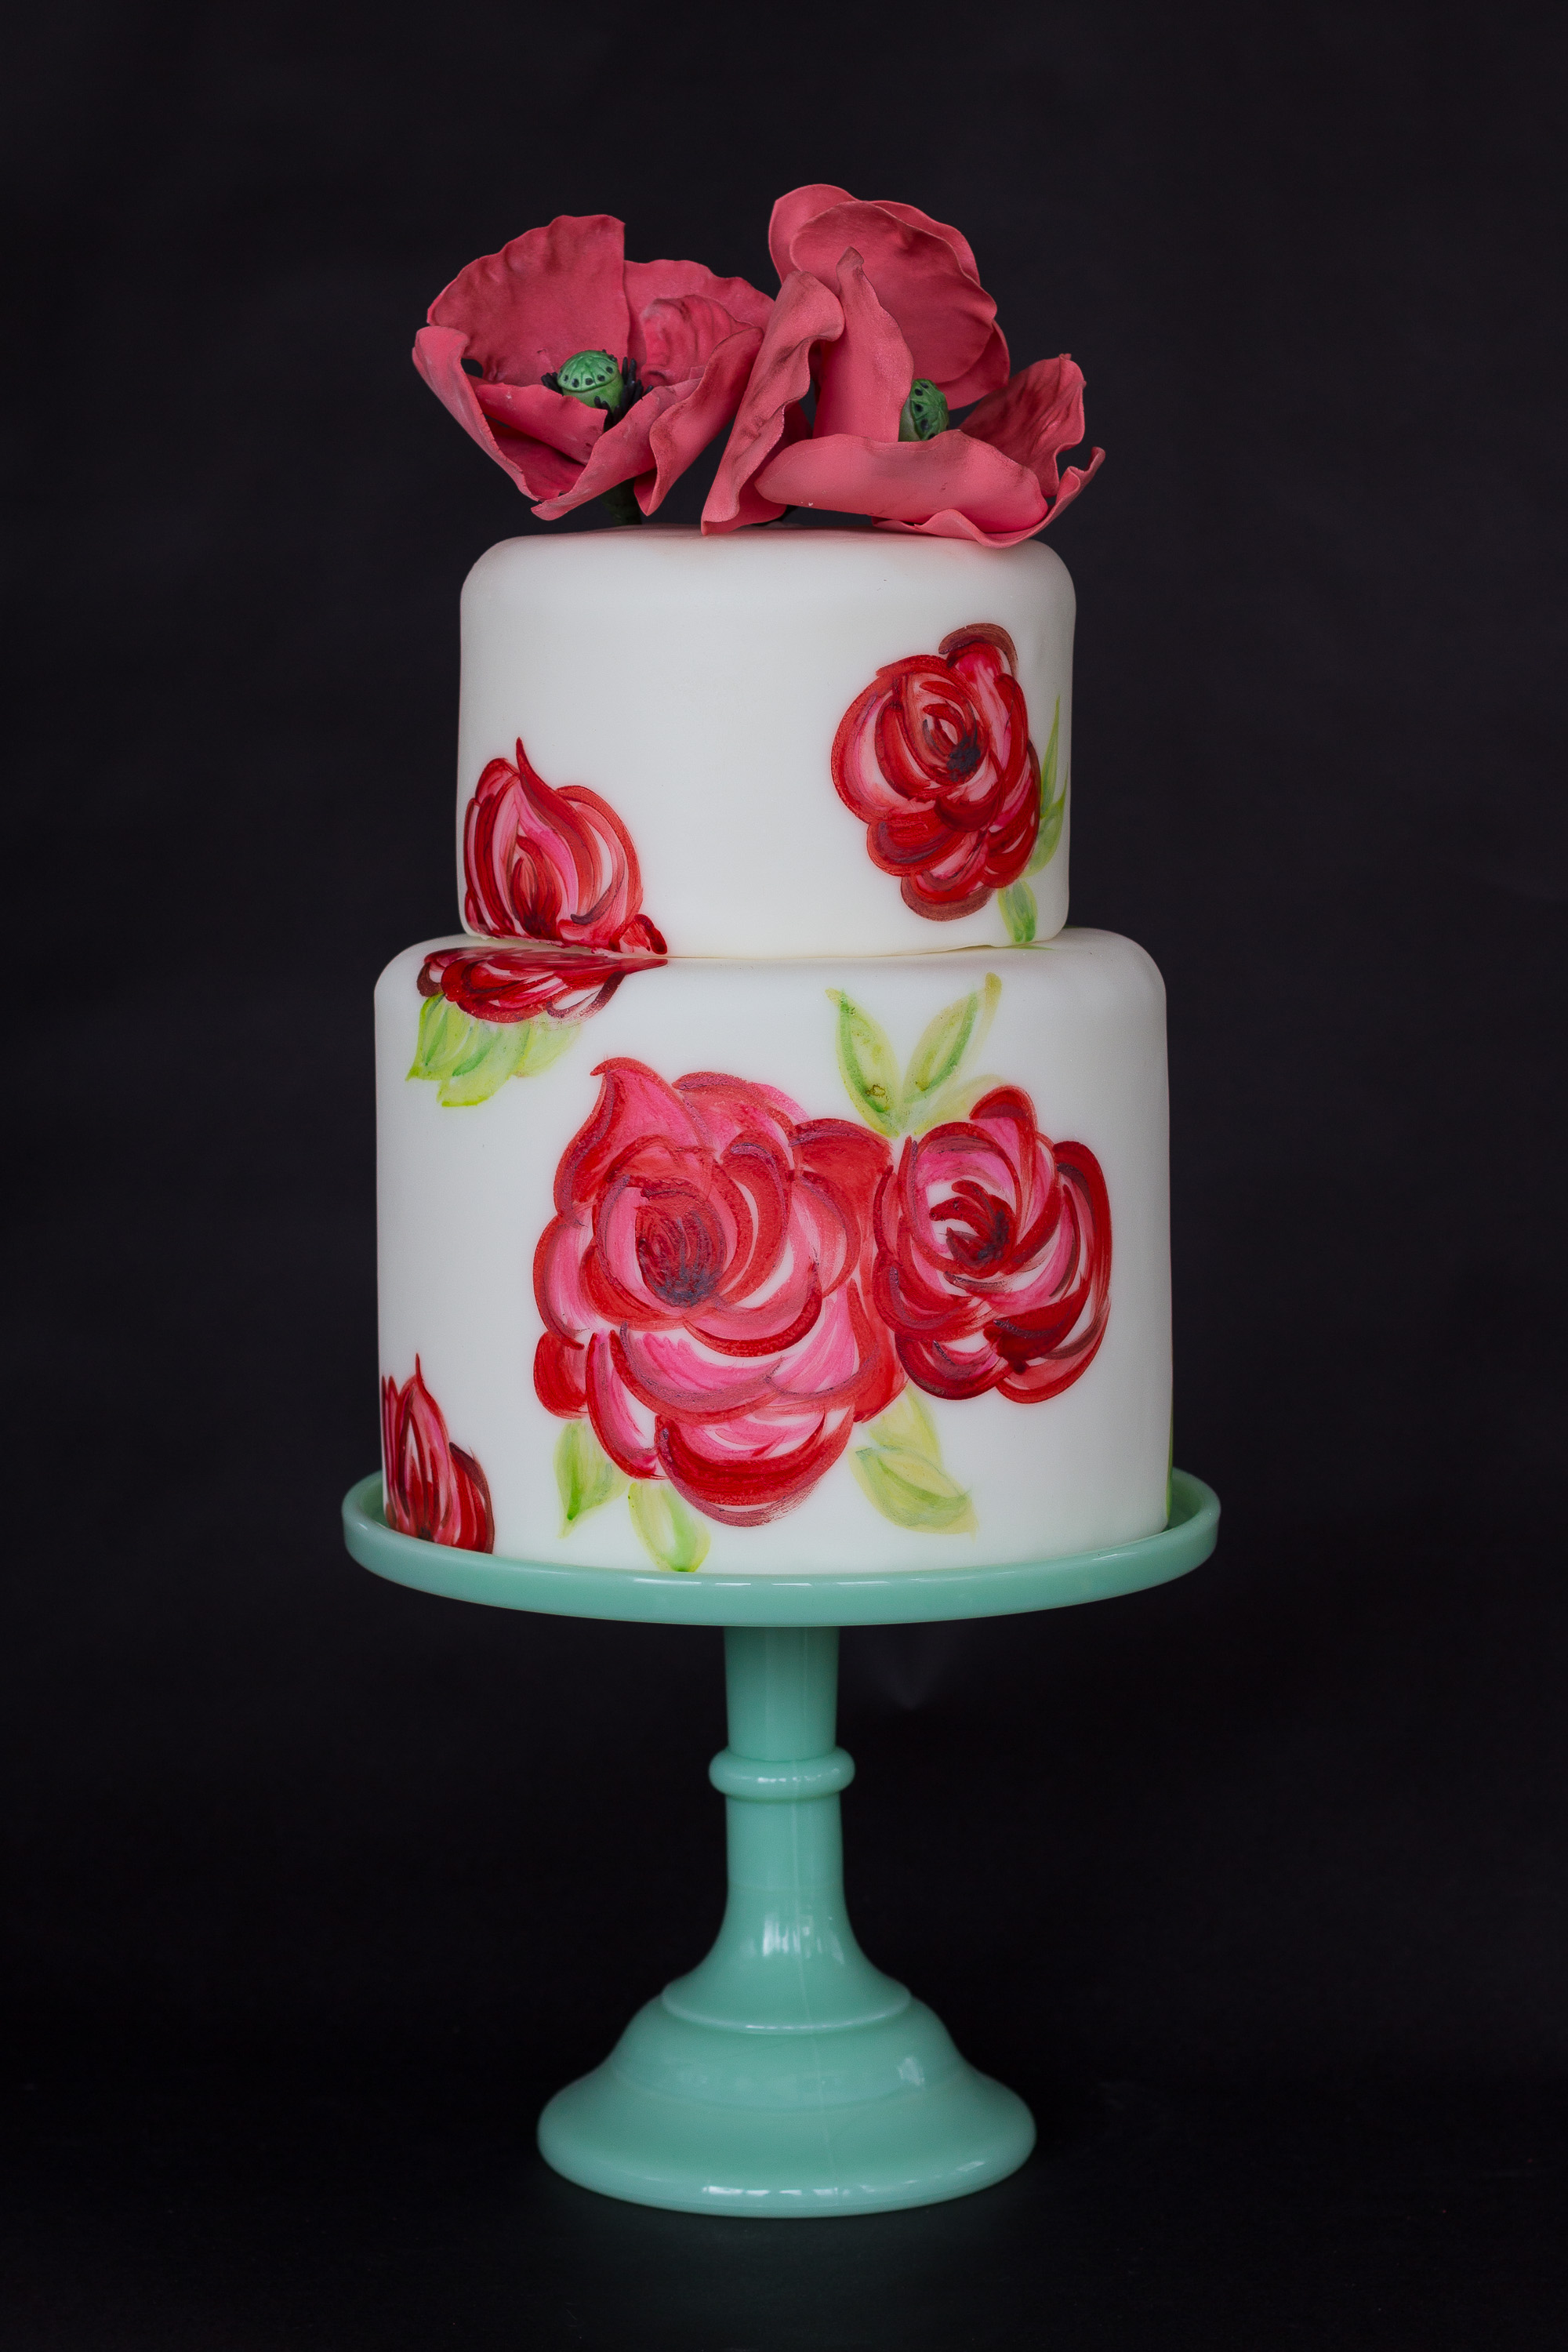 Wedding Cake8 - Hand-painted Cake.jpg